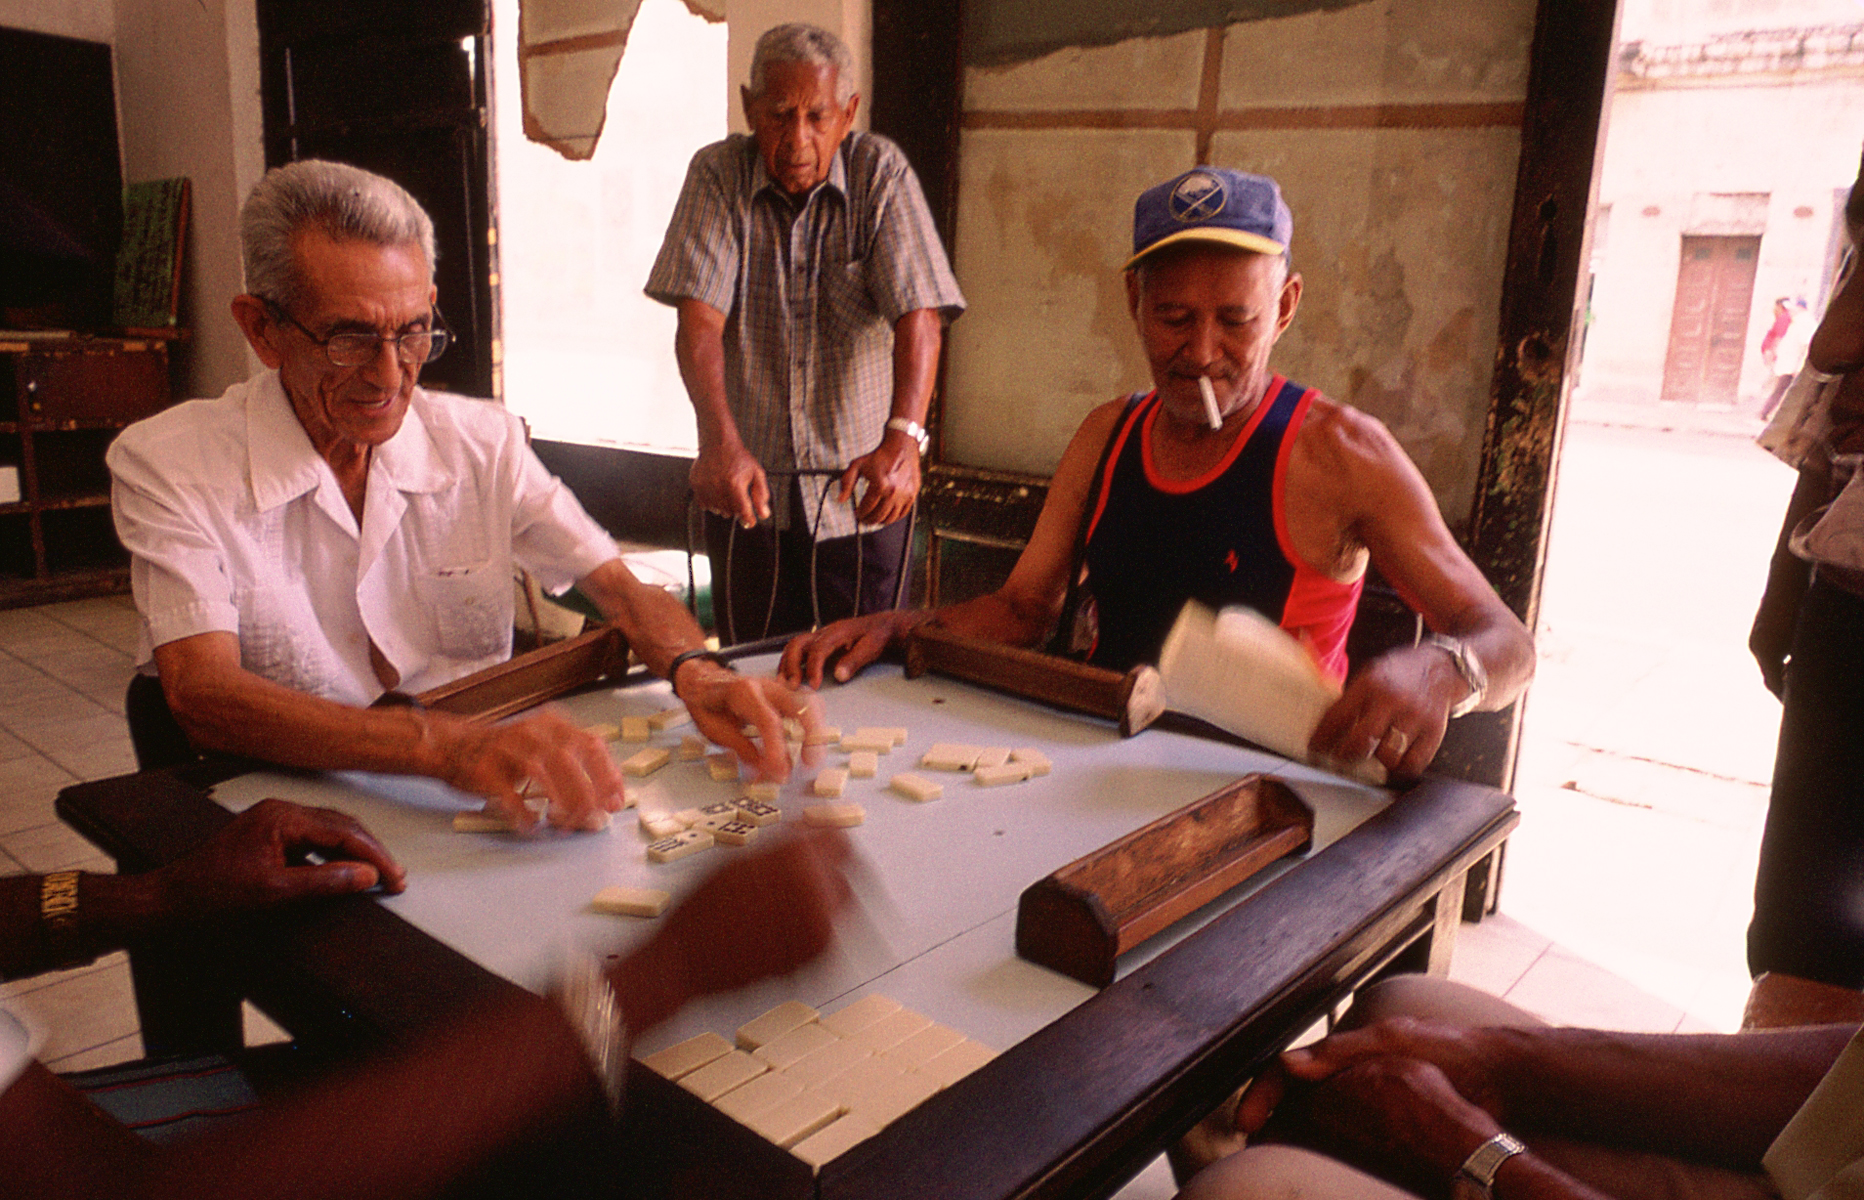 A group of elderly men gather in vacant building for an afternoon of dominoes and conversation. Havana, Cuba